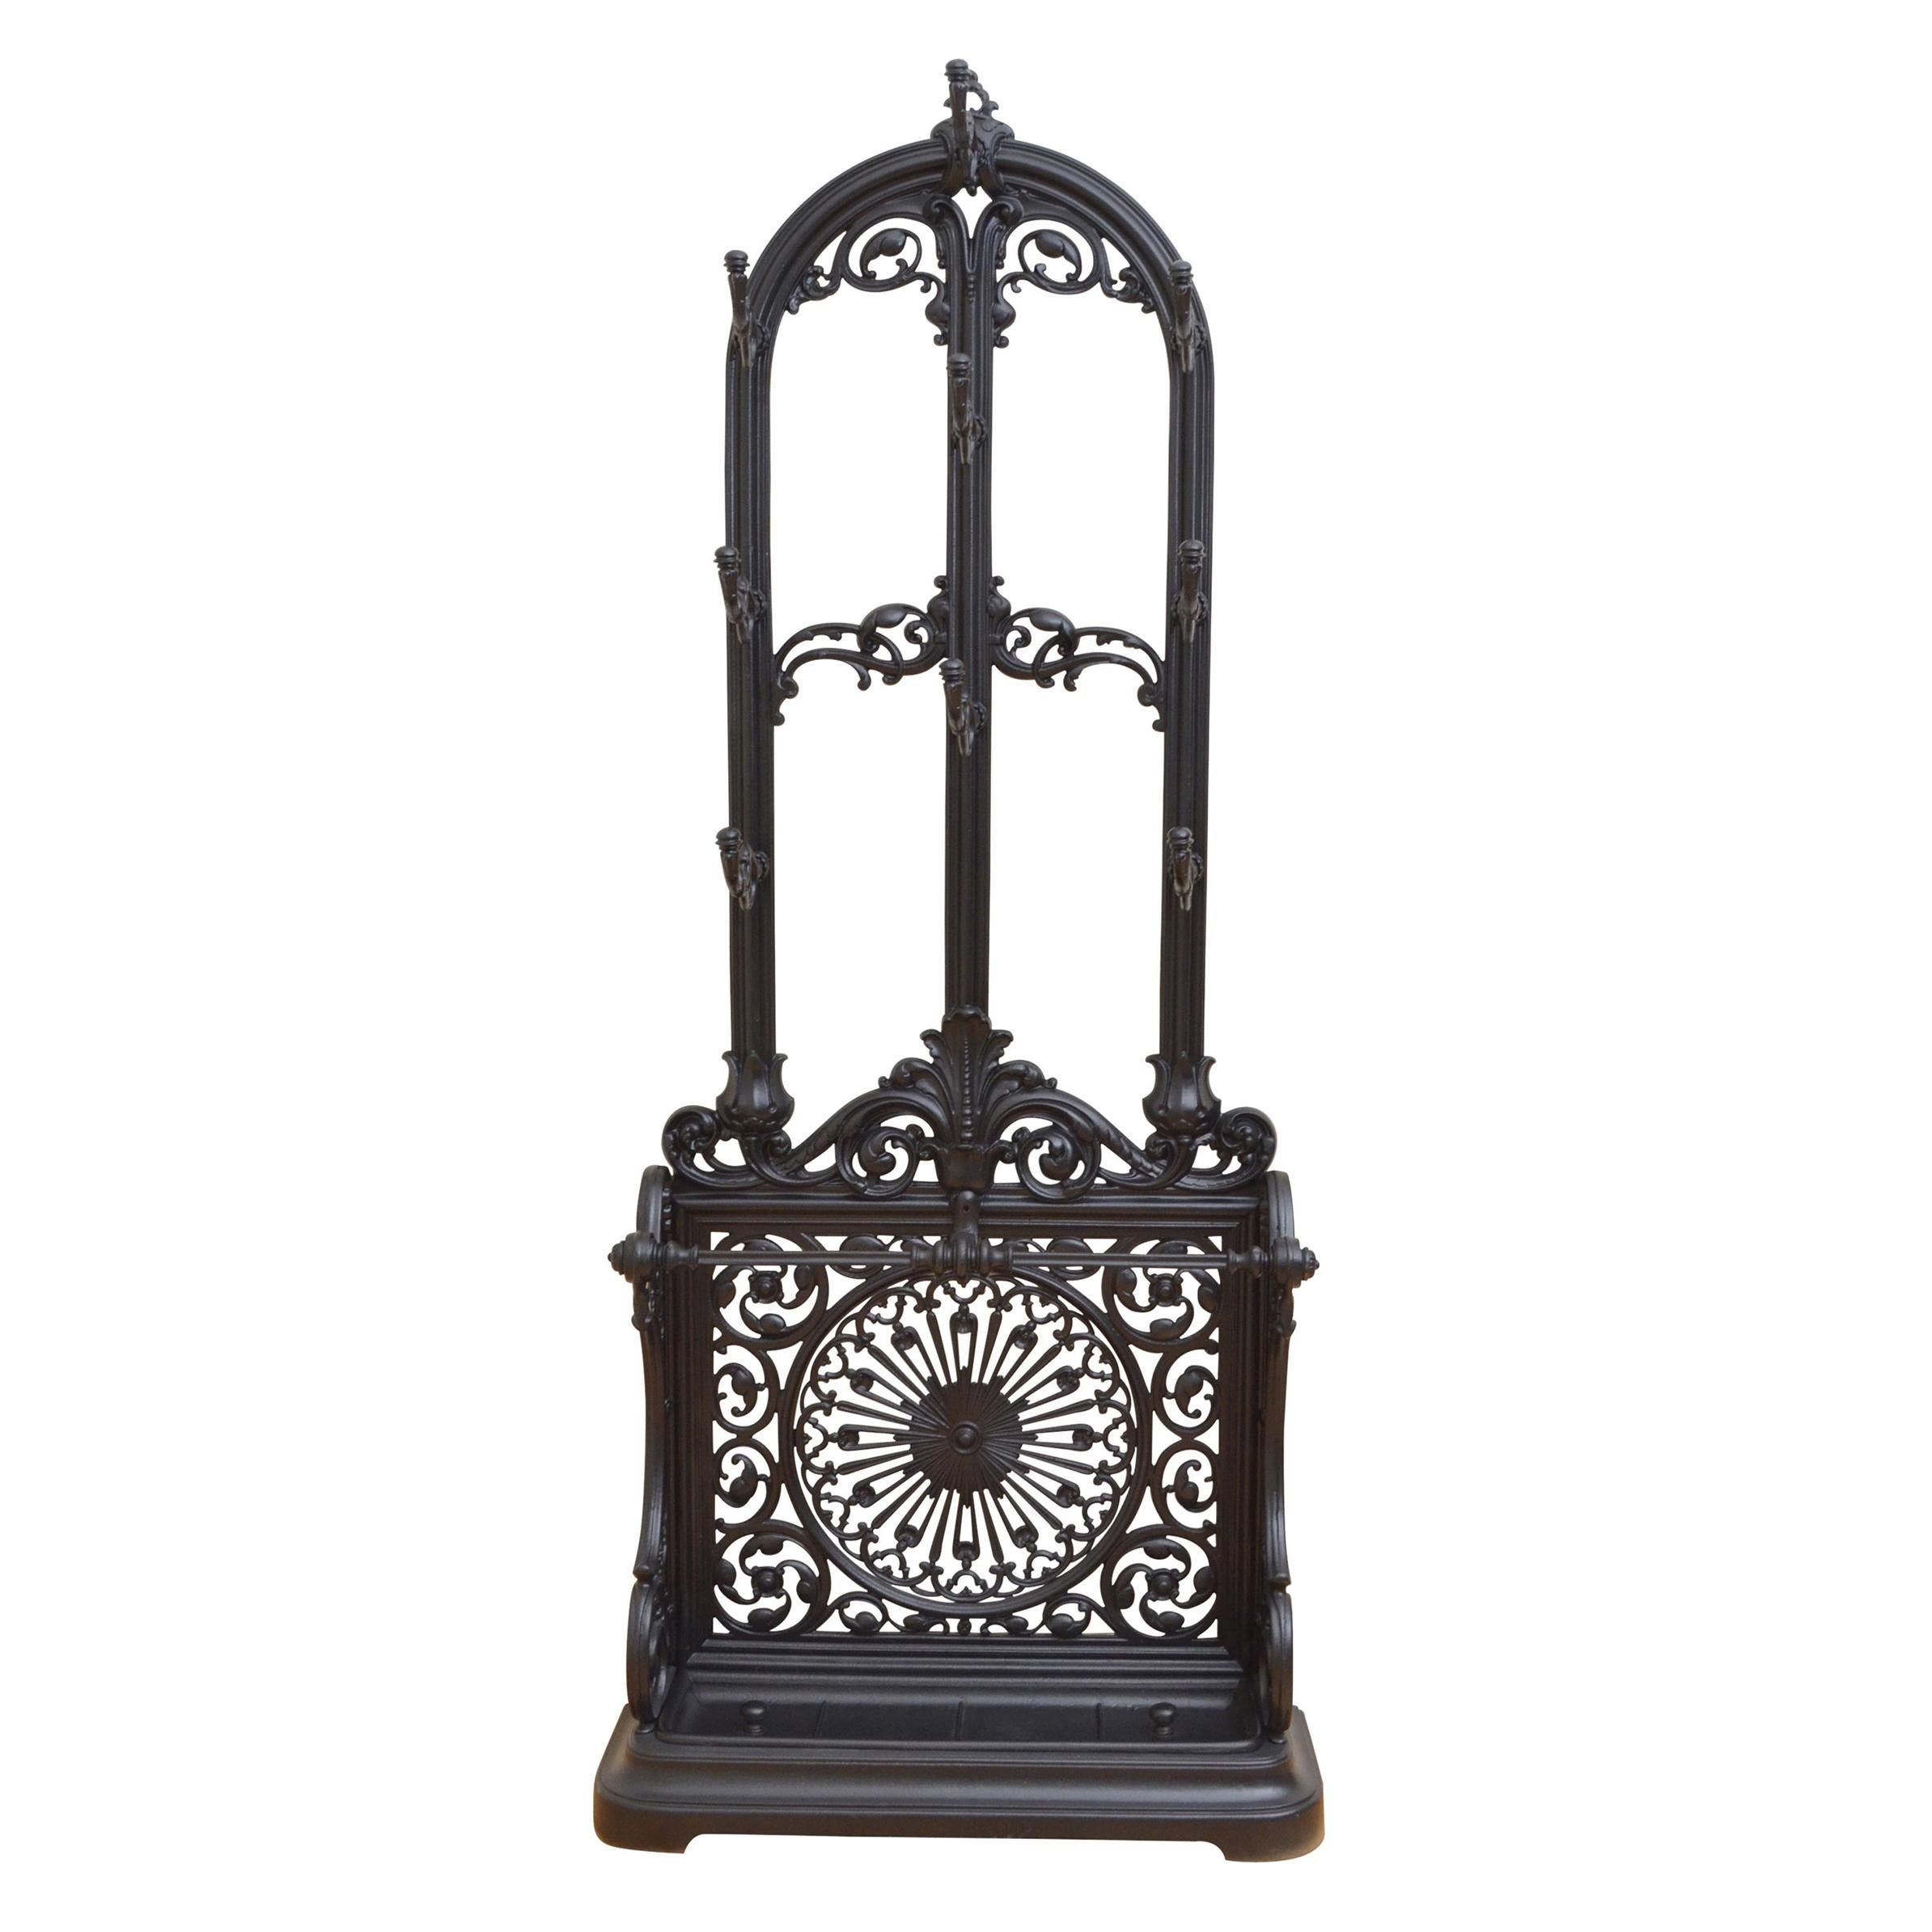 Coalbrookdale Style Cast Iron Hall Stand